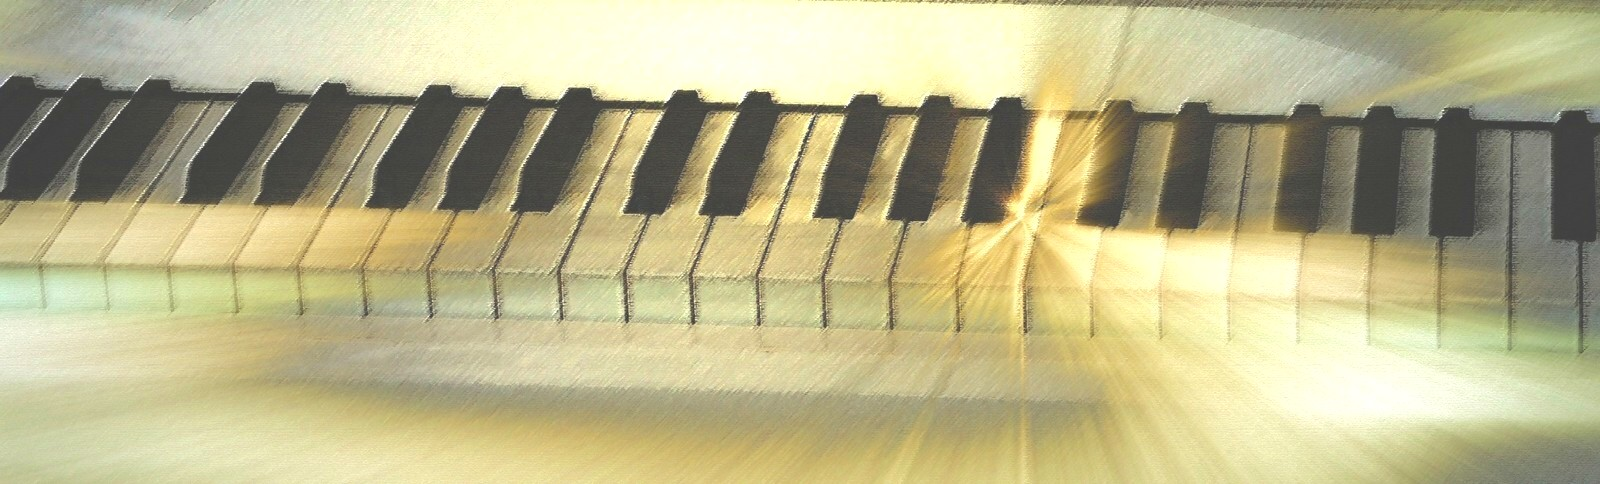 piano lessons banner